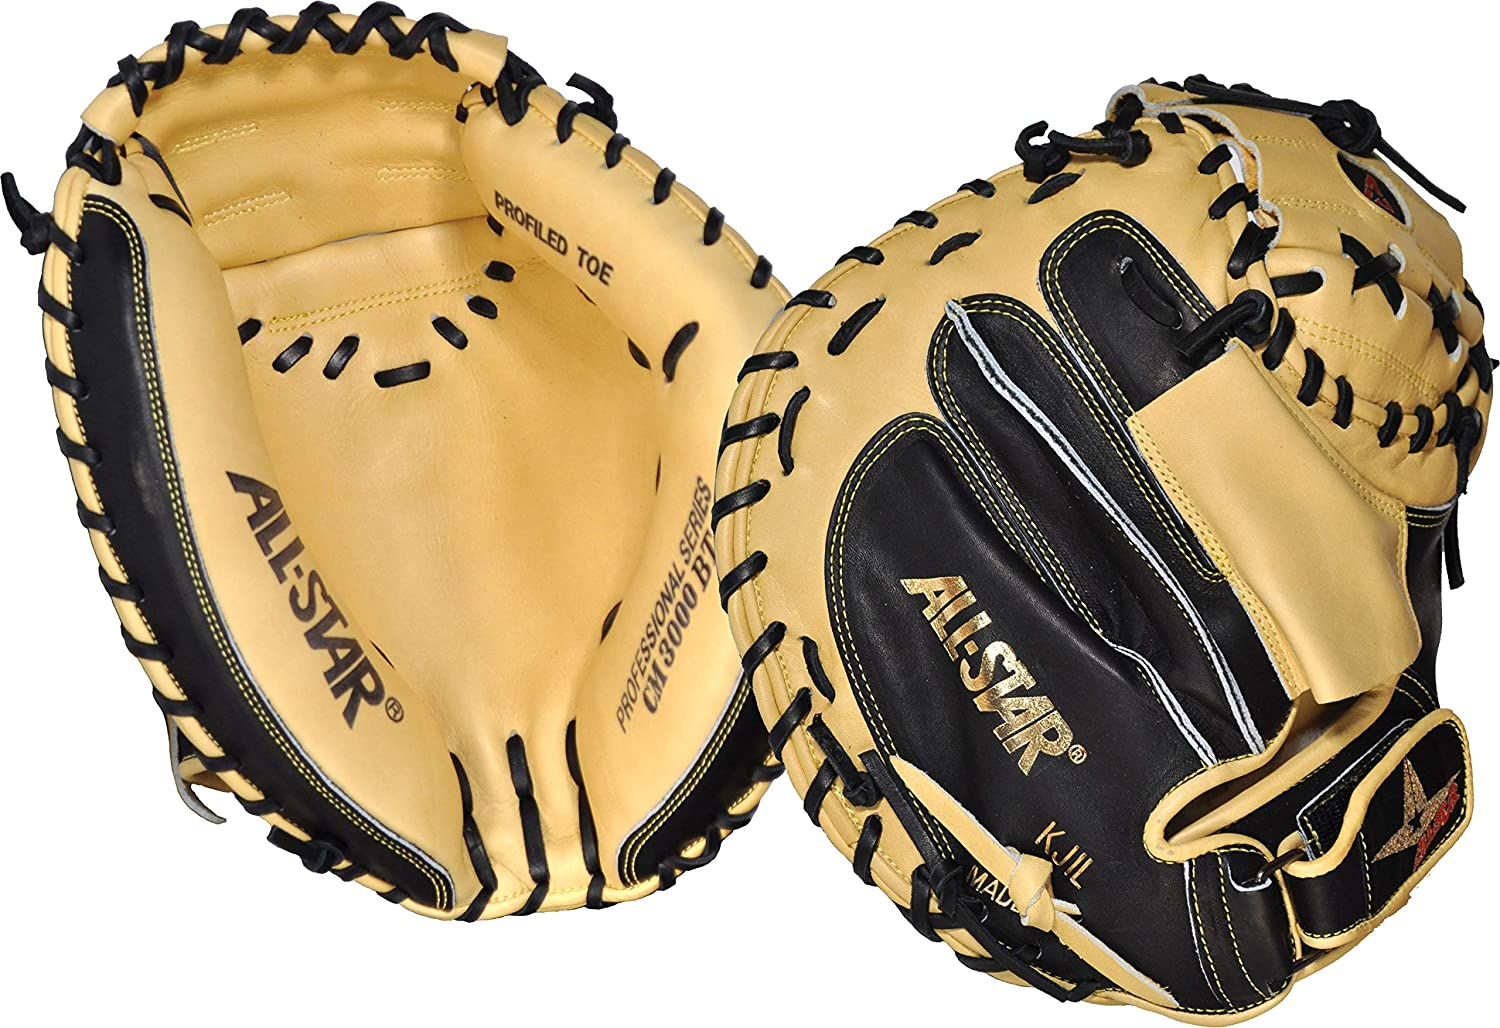 all-star-pro-elite-series-33-5-baseball-catchers-mitt-right-hand-throw CM3000SBT-1-RightHandThrow